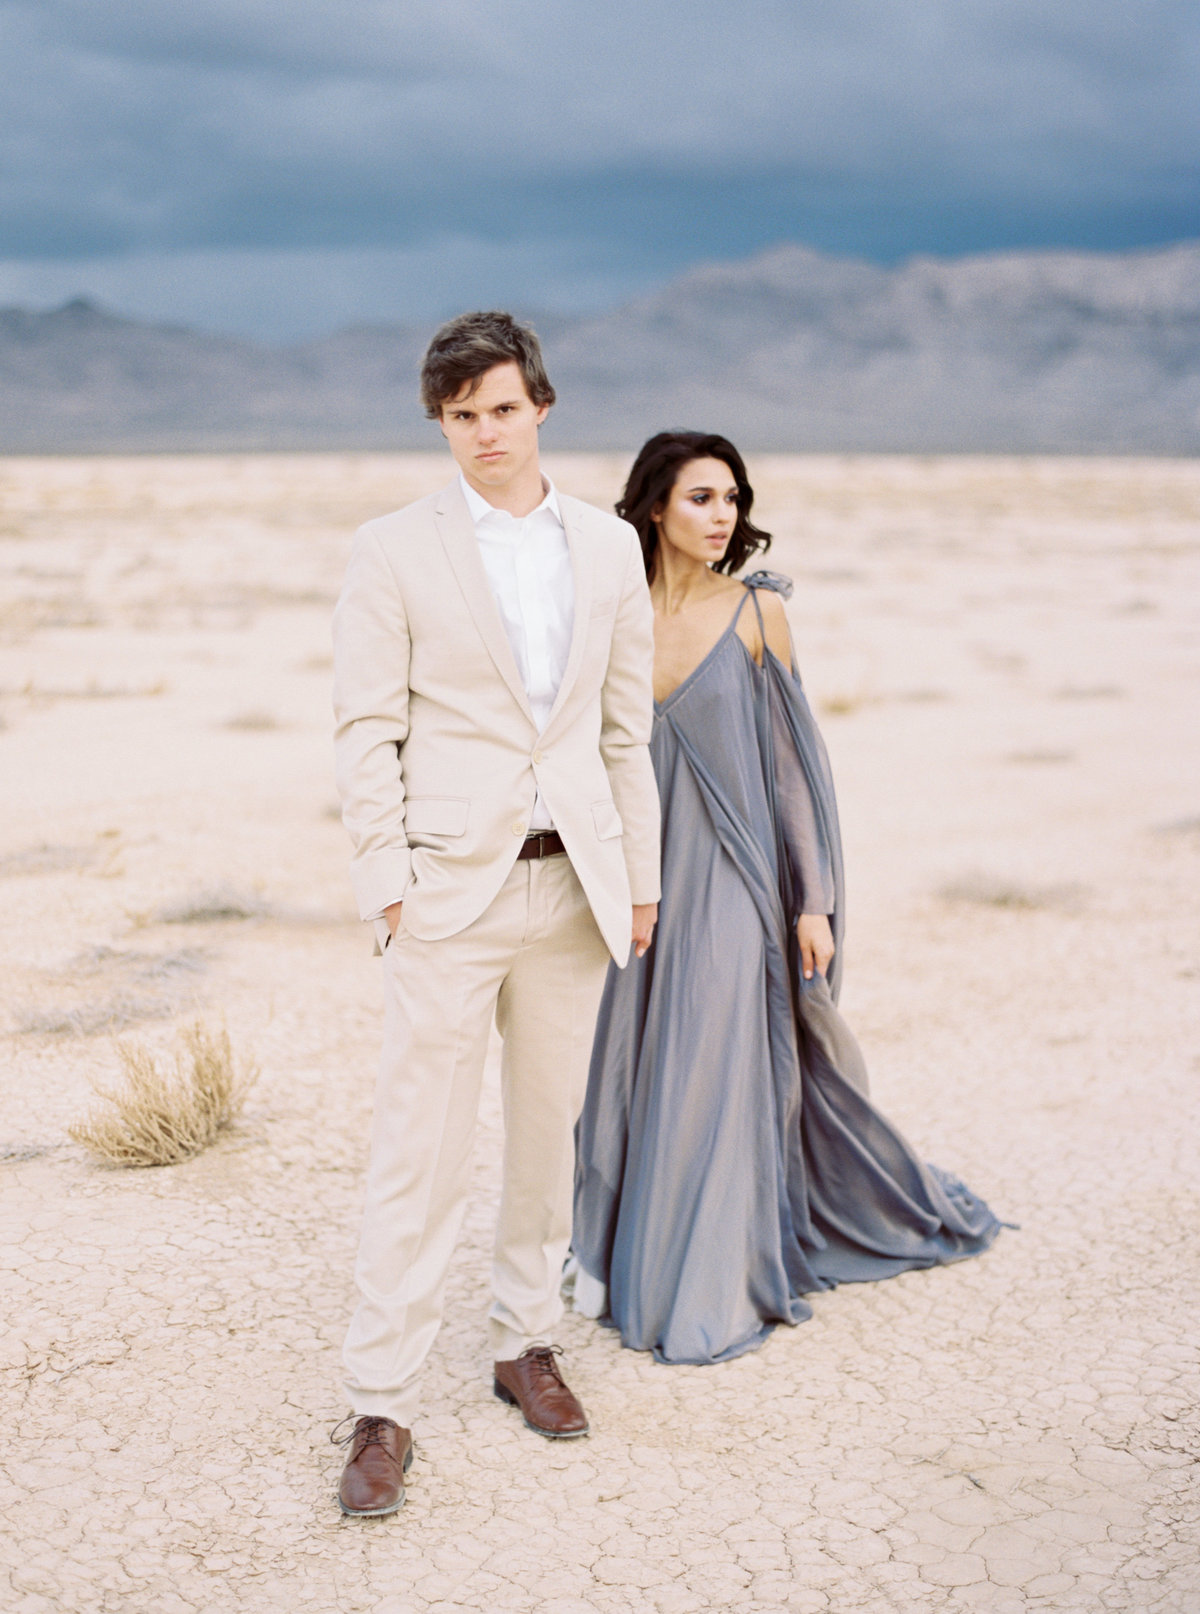 philip-casey-photography-desert-oasis-editorial-session-12